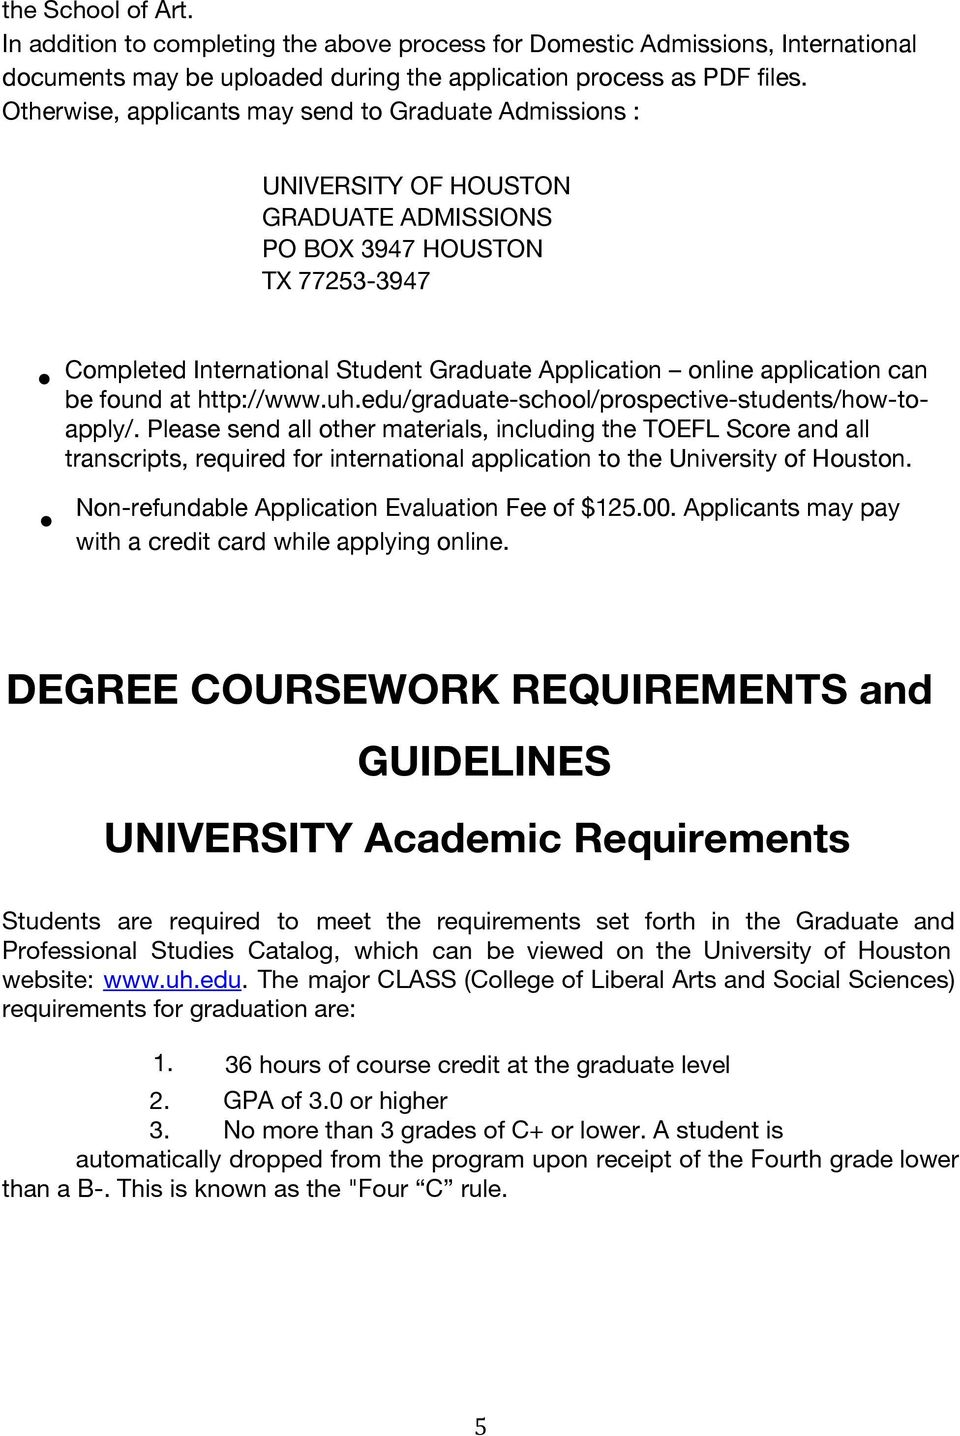 application can be found at http://www.uh.edu/graduate-school/prospective-students/how-toapply/.